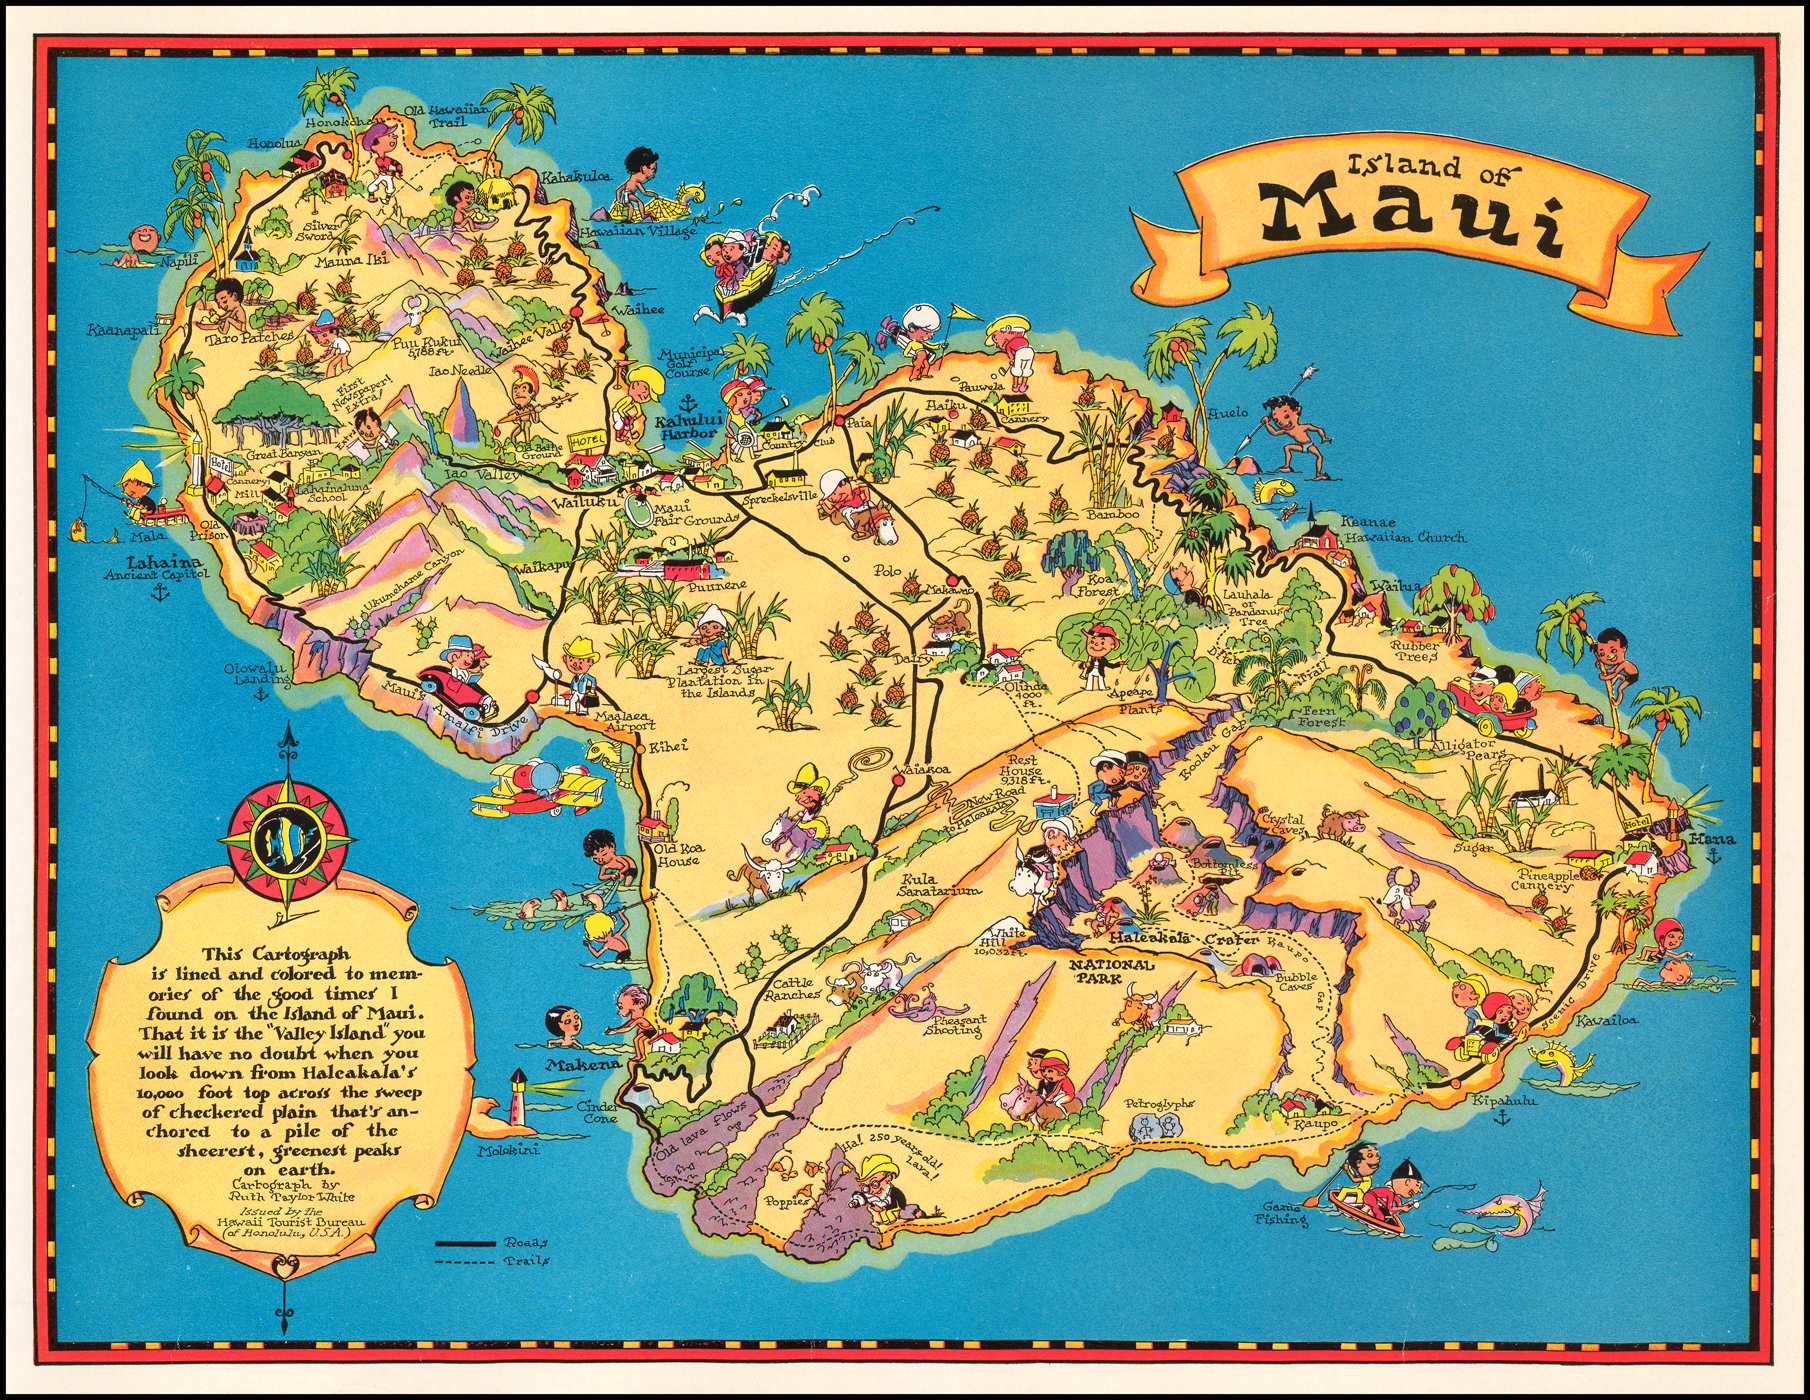 image regarding Printable Maps of Maui named Island of Maui - Barry Lawrence Ruderman Antique Maps Inc.